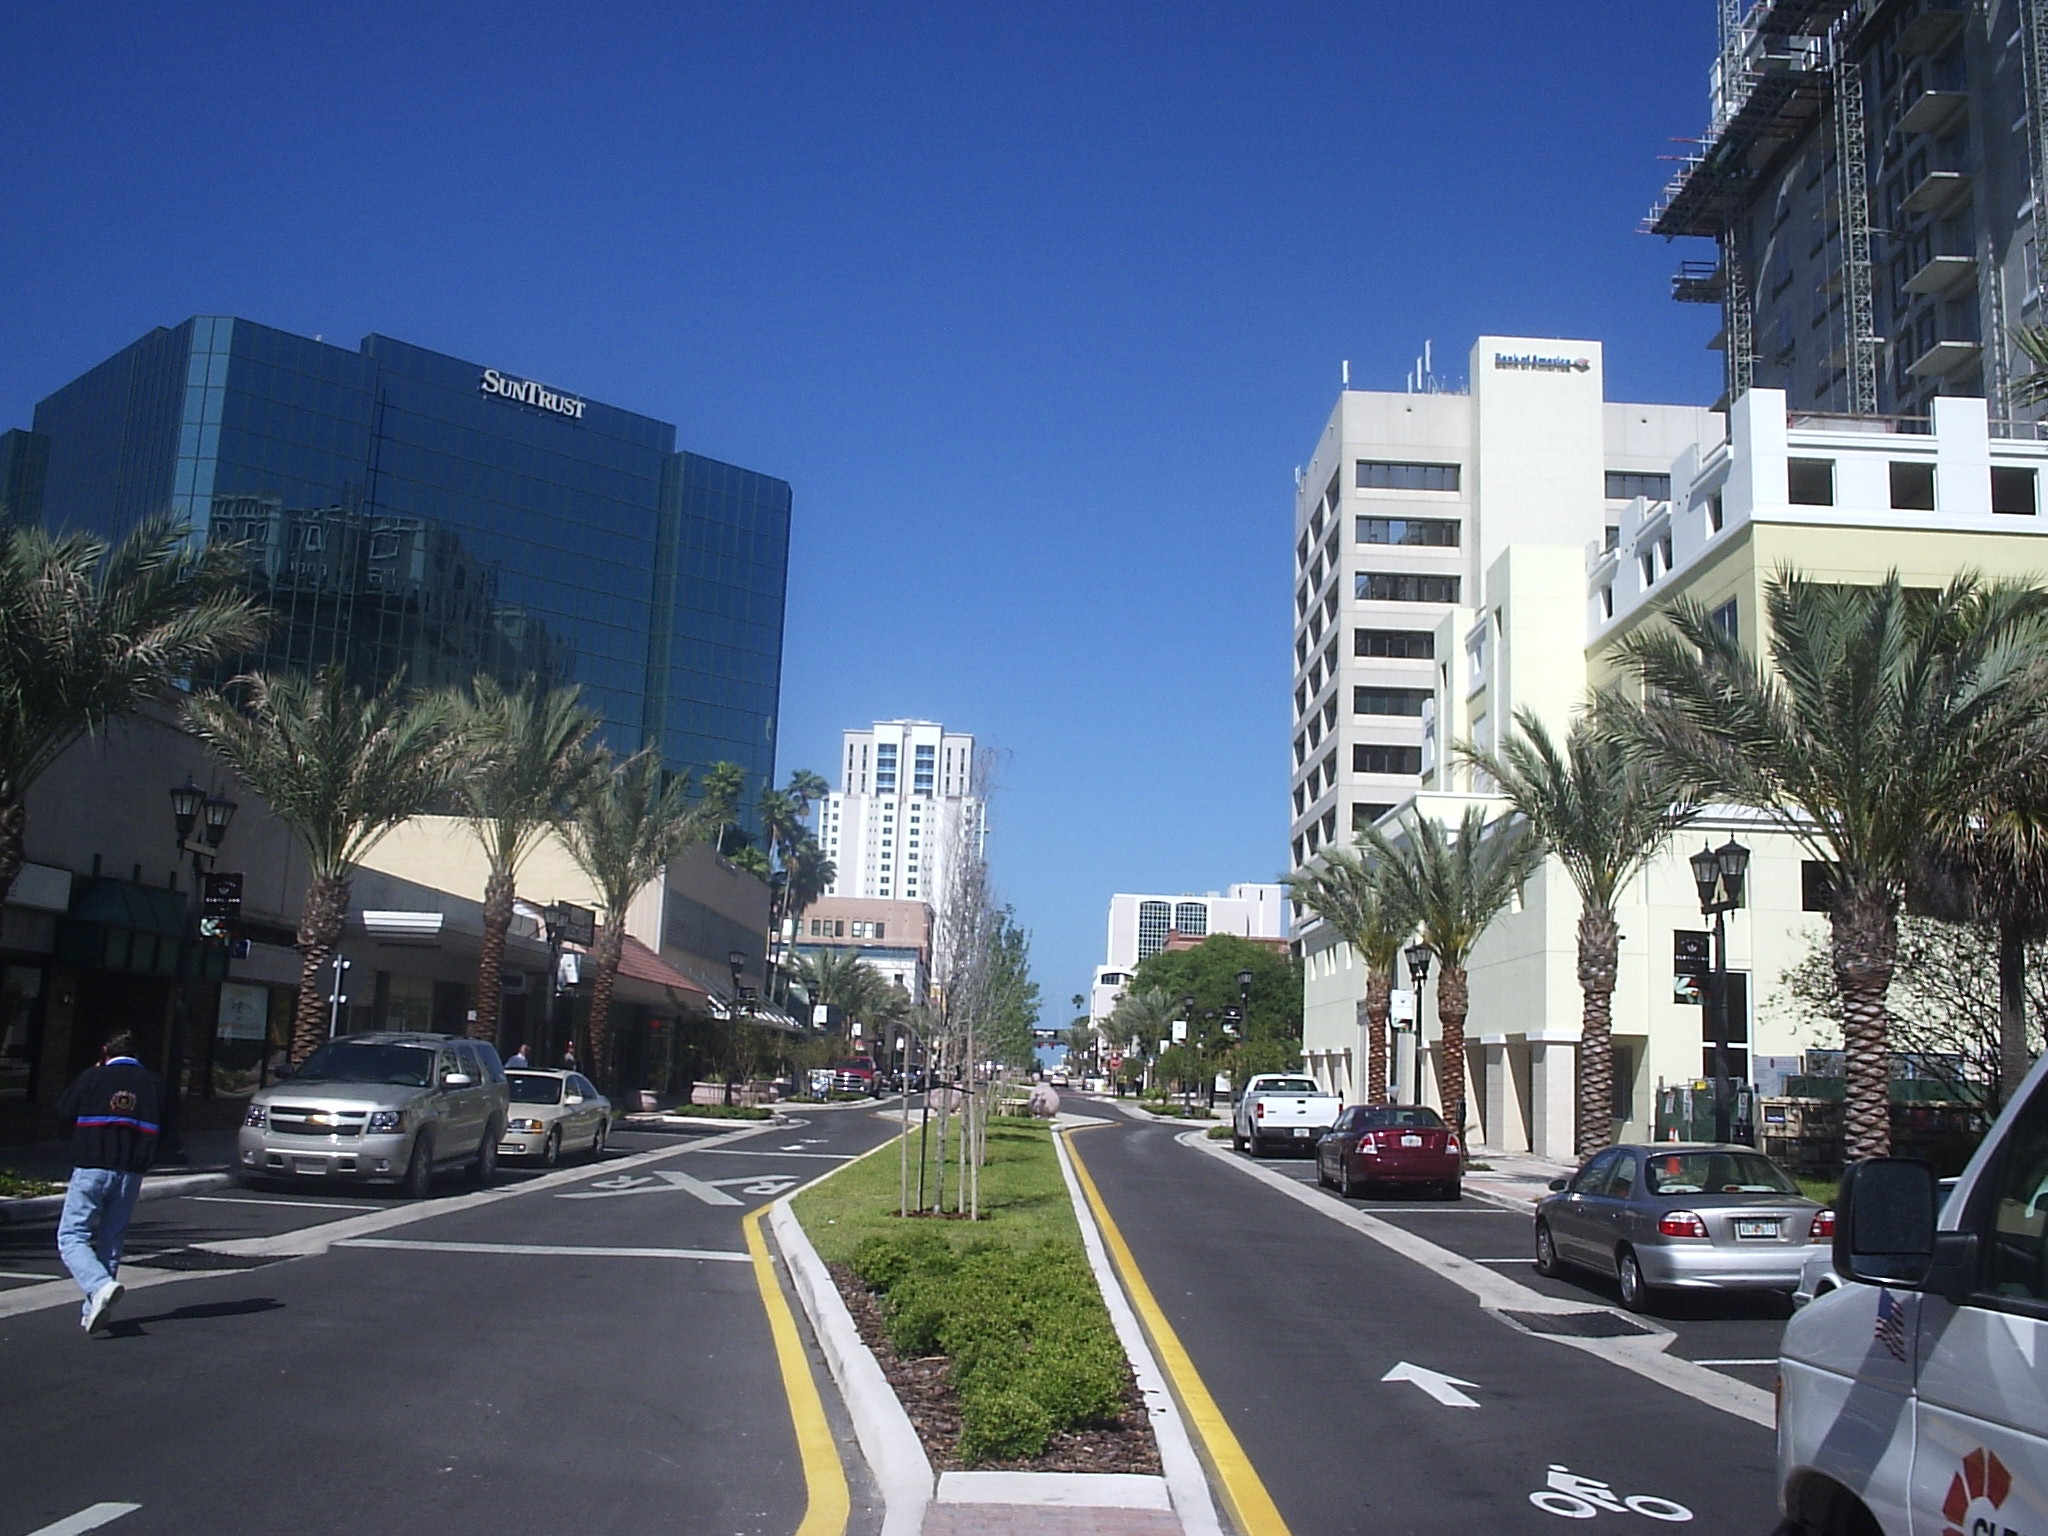 related posts clearwater florida trip pic 2011 miami florida royal 2048x1536